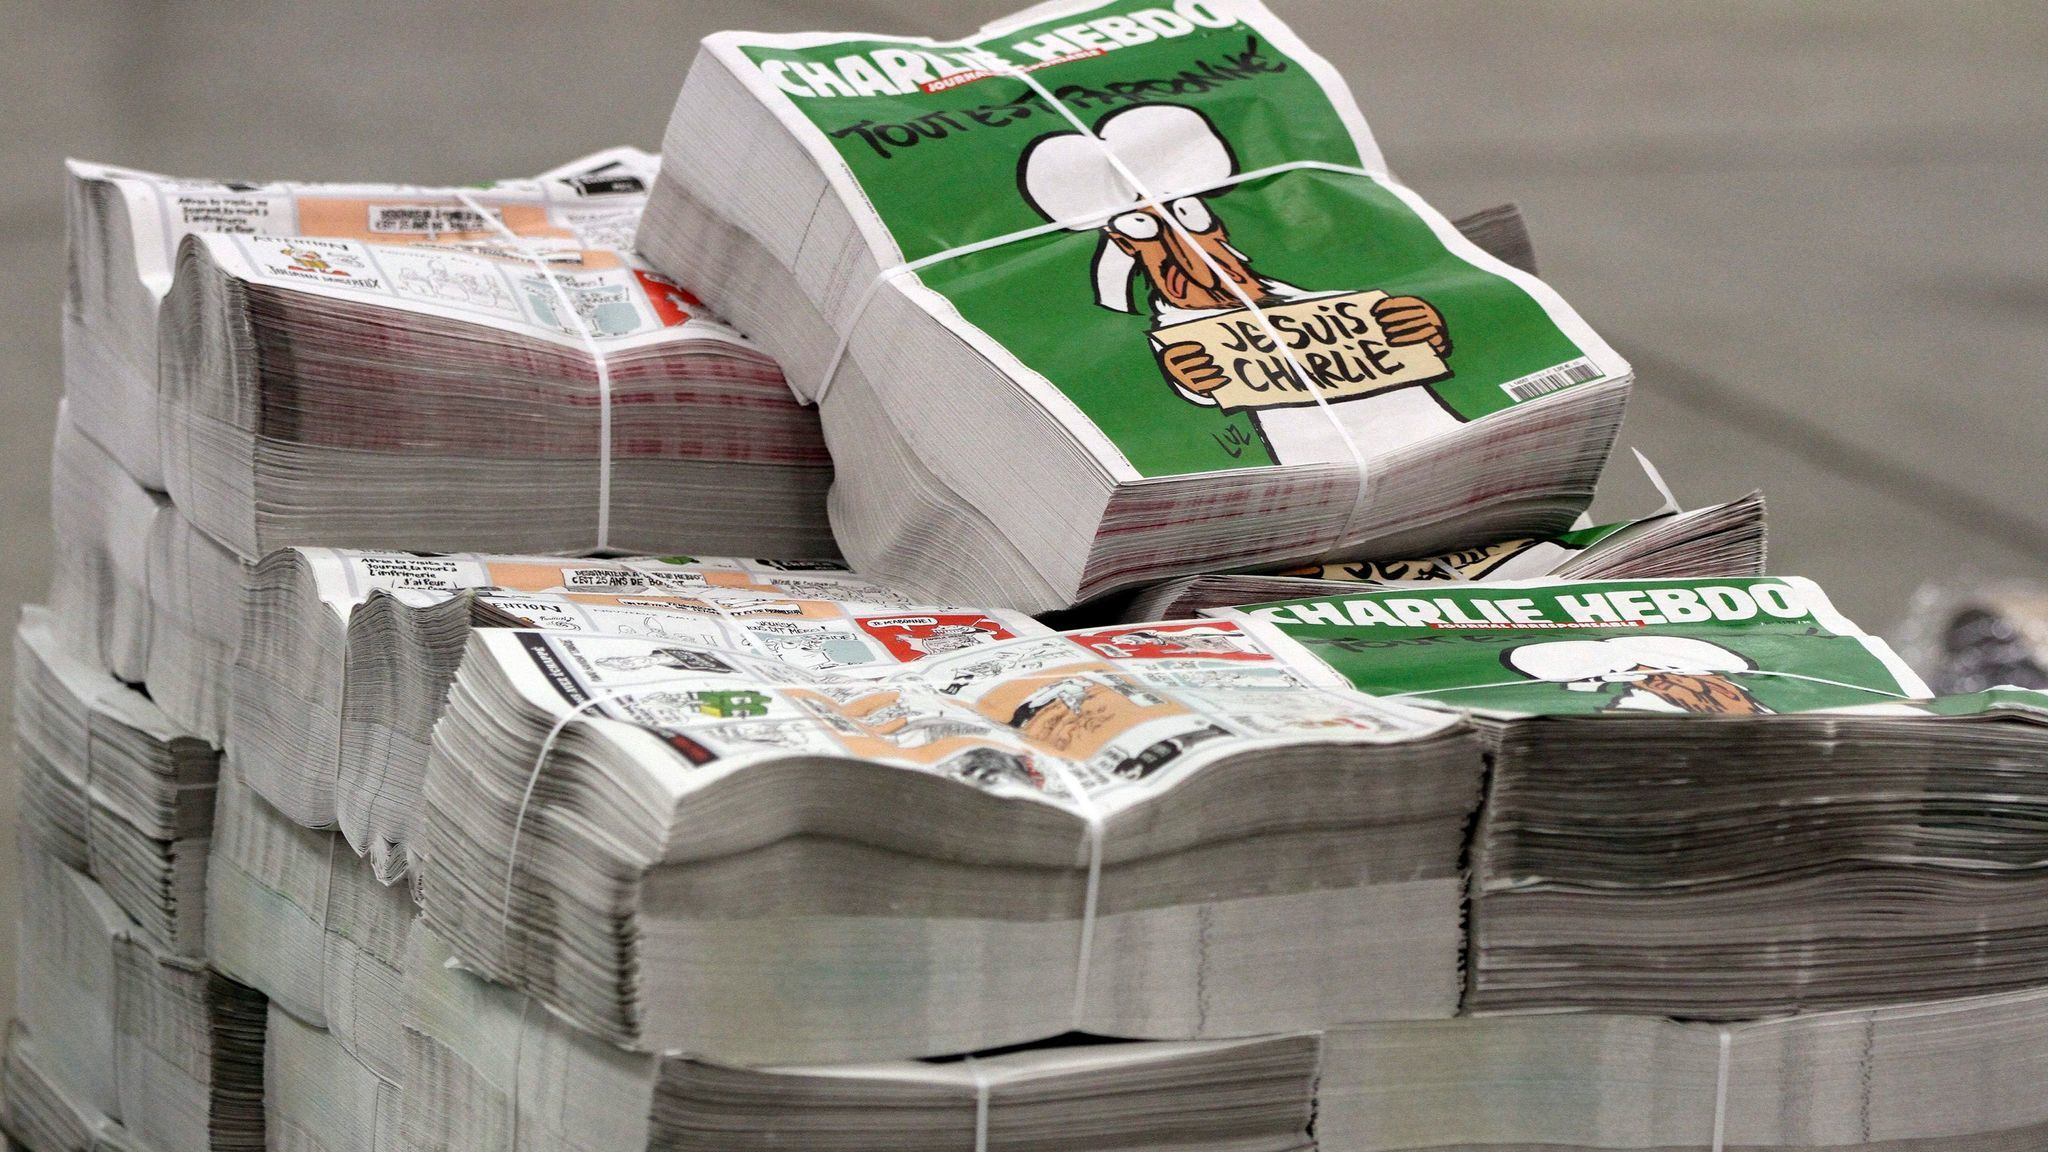 Copies of the French satirical magazine Charlie Hebdo are stacked at a distribution center in Nantes, France, Jan. 13, 2015.